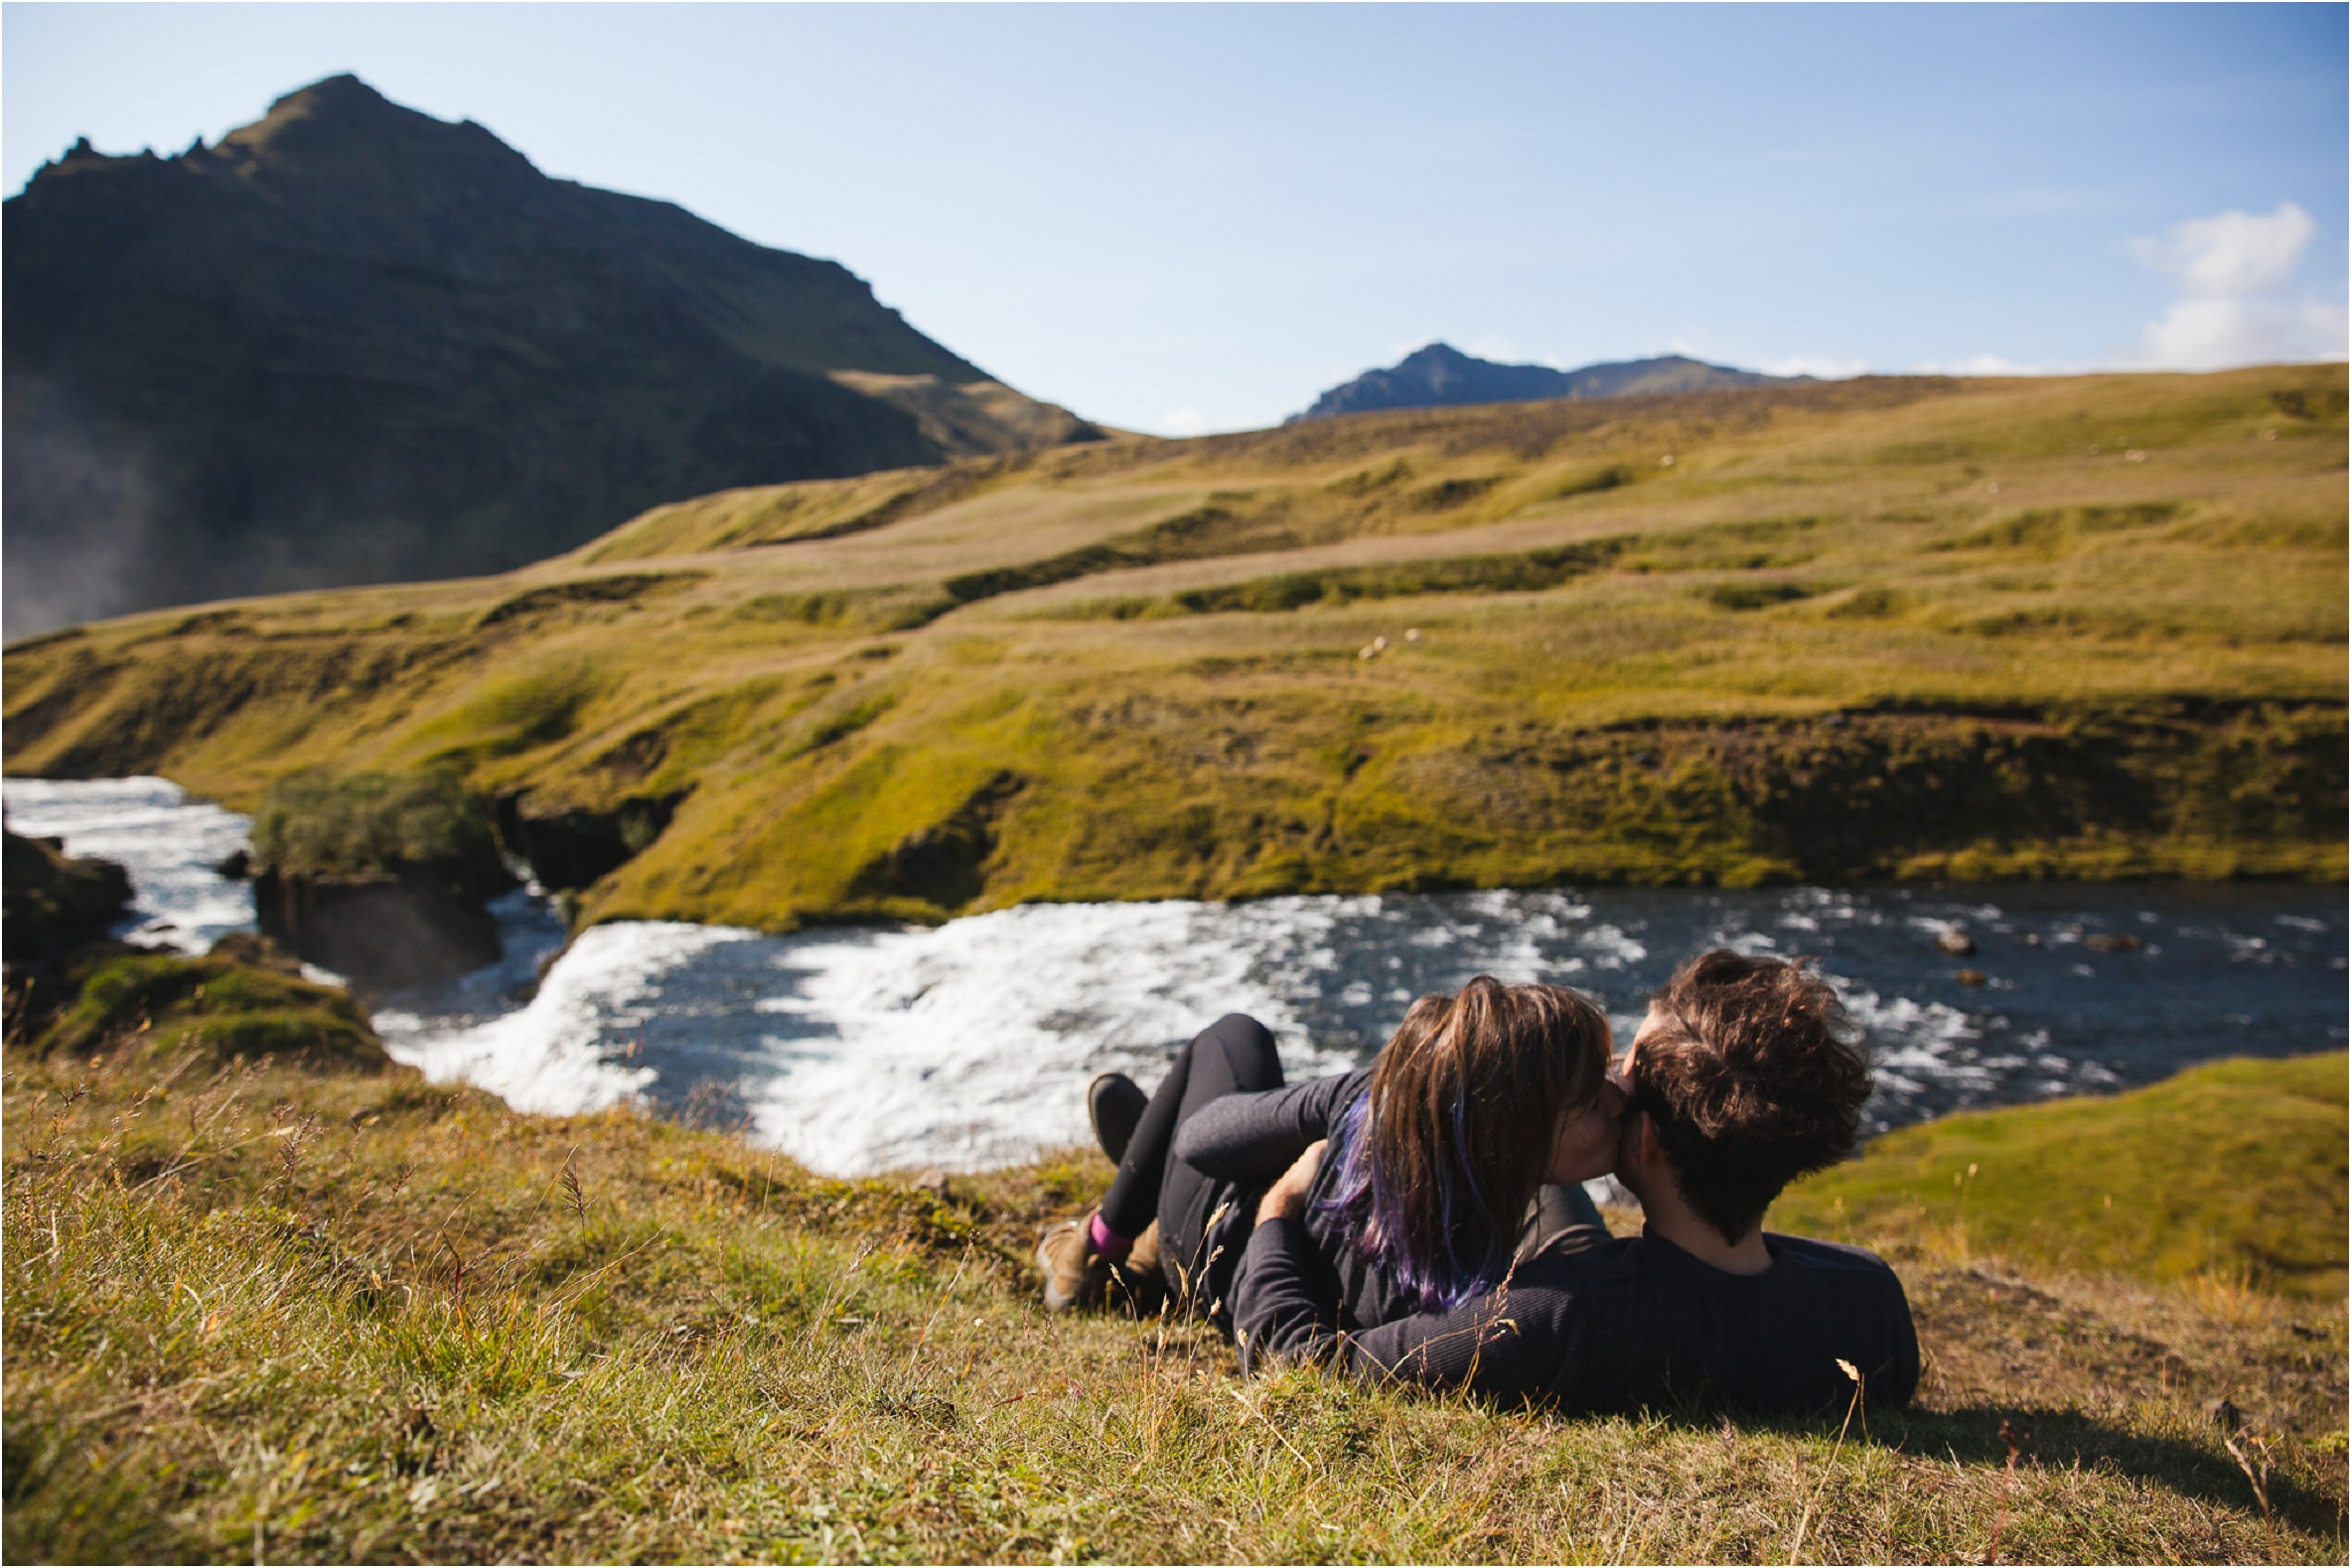 Iceland Vacation Summer, Elopement Photographer, Destination Wedding Photographer, Iceland Photographer, Iceland Elopement Photographer, Destination Wedding Photographer, Travel Wedding Photographer, Travelling Elopement Photographer, Danielle Salerno Photography, Skogafoss, Couple Laying in Grass